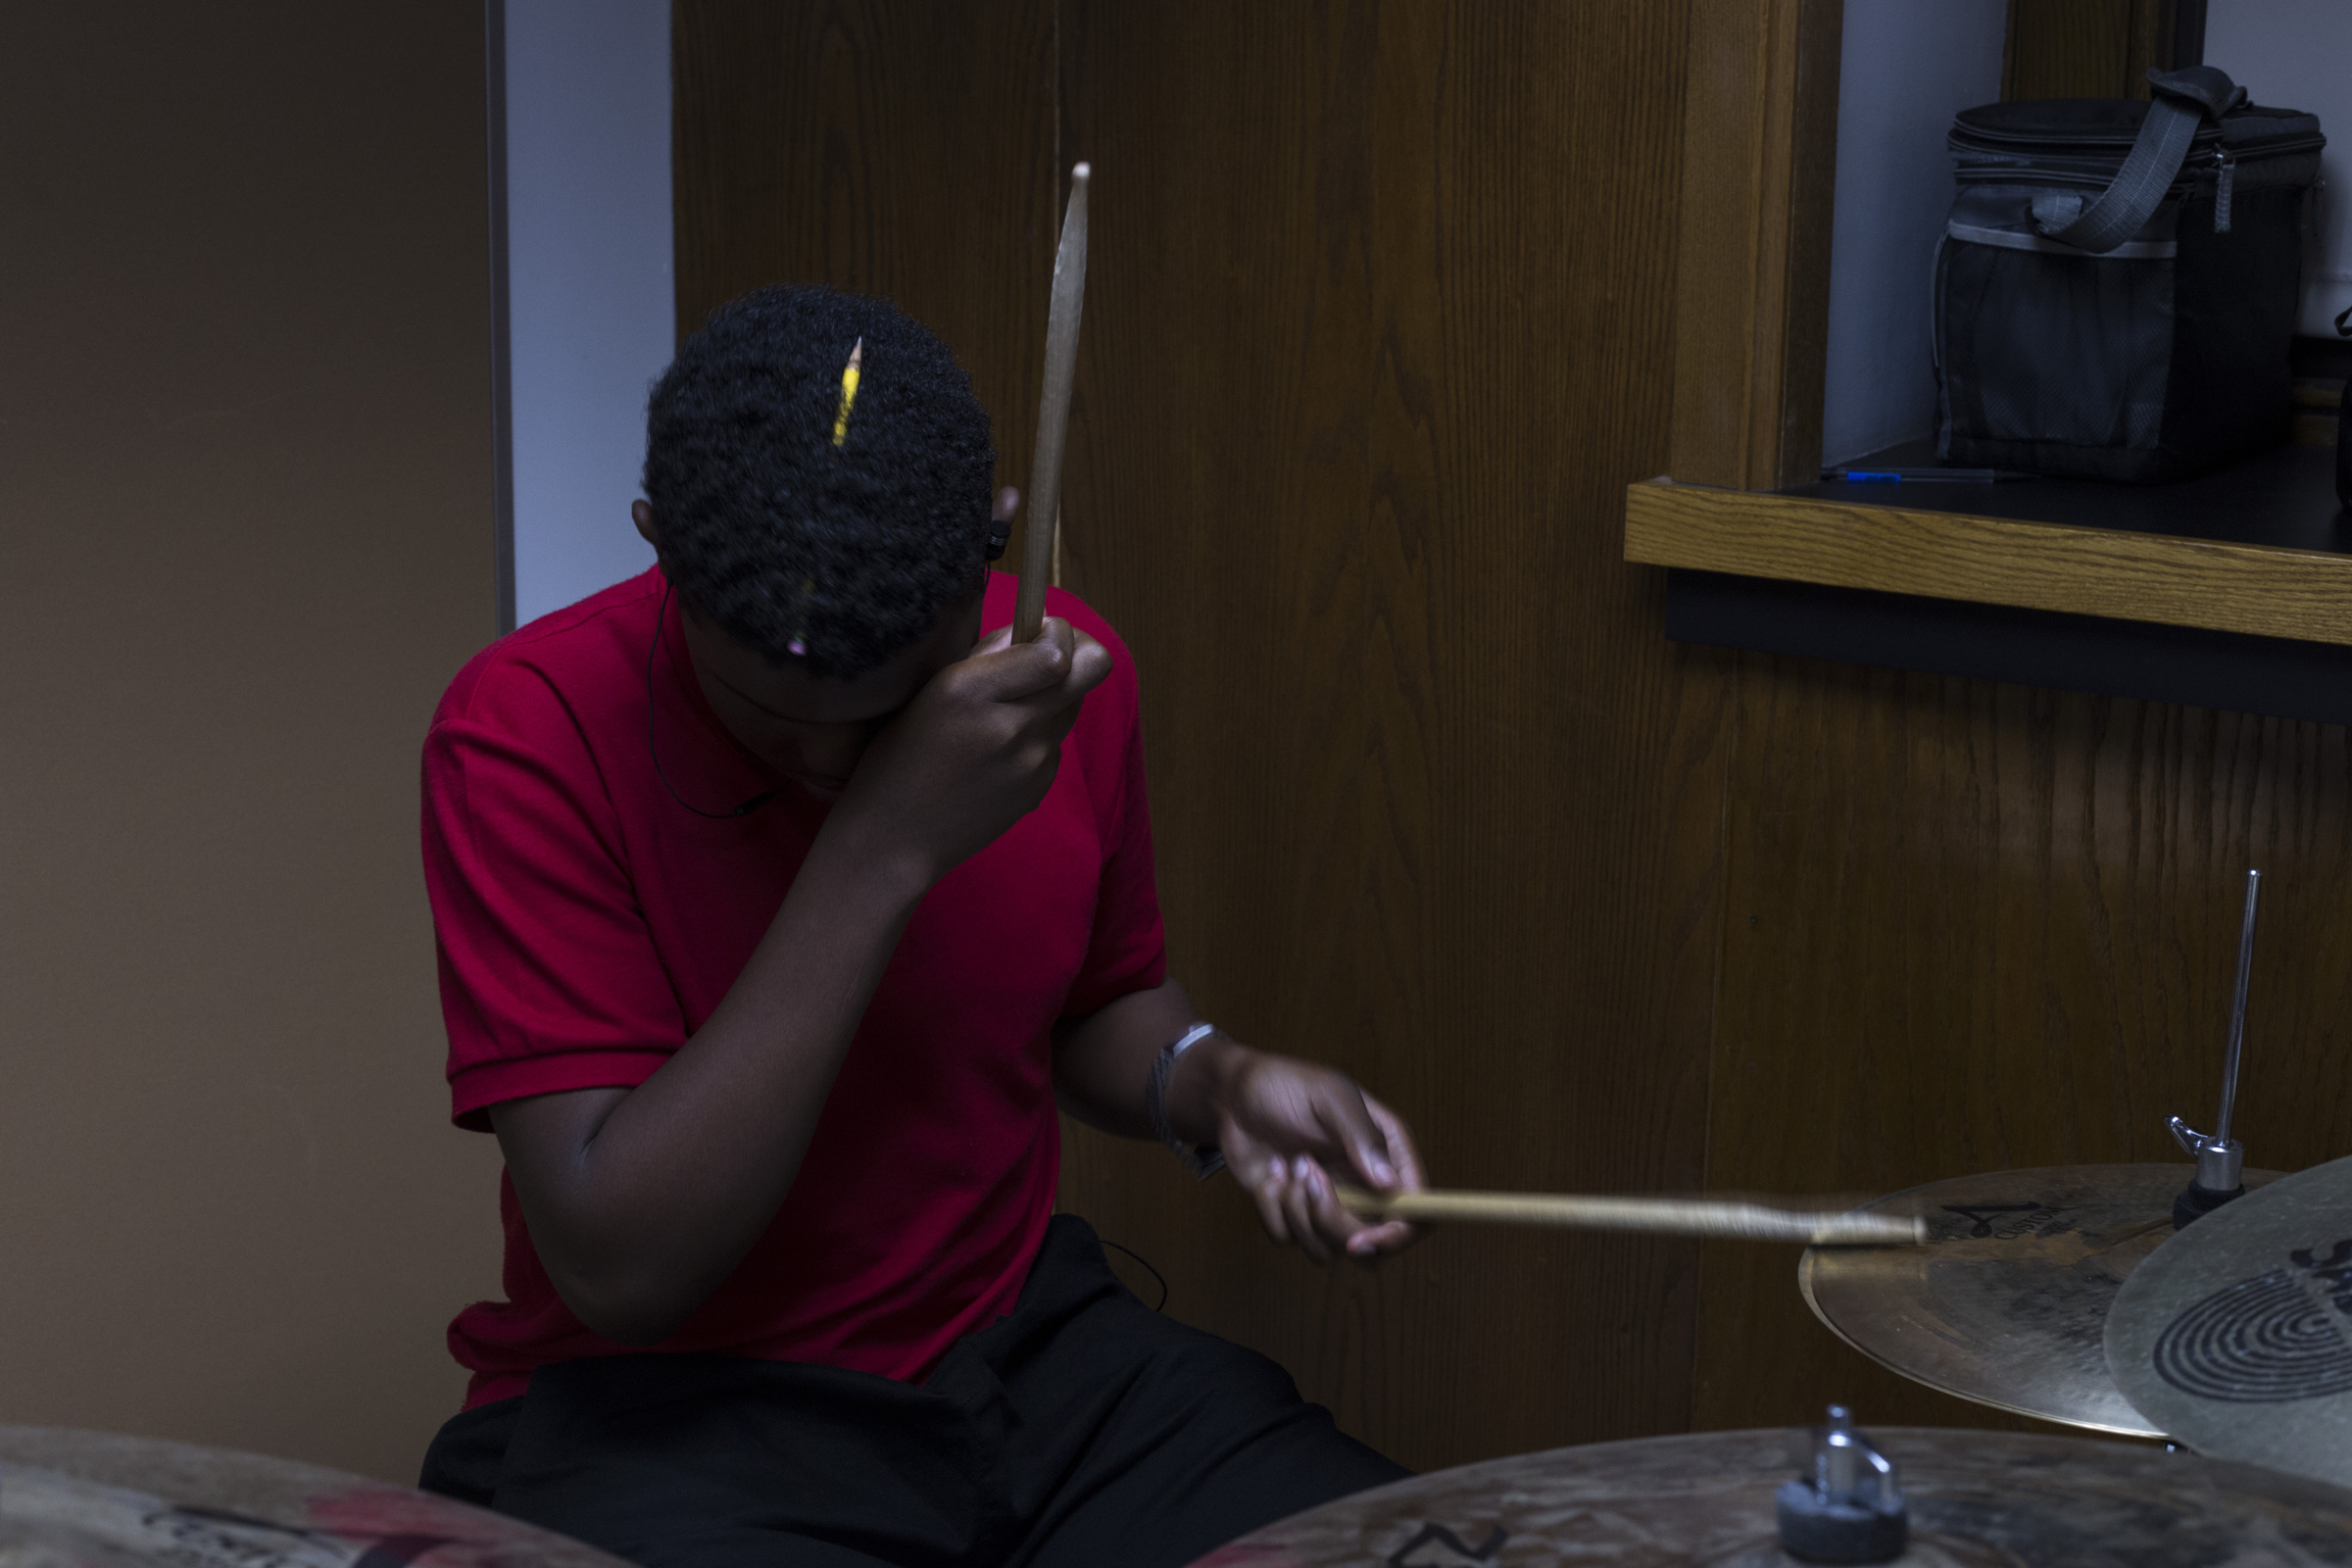 Holding a pencil in his hair, Christoph Gibbon, 16, plays the drums in sequence with his classmates during Jazz band at the High School of Commerce in Springfield, Mass., on Monday, September, 11, 2017.